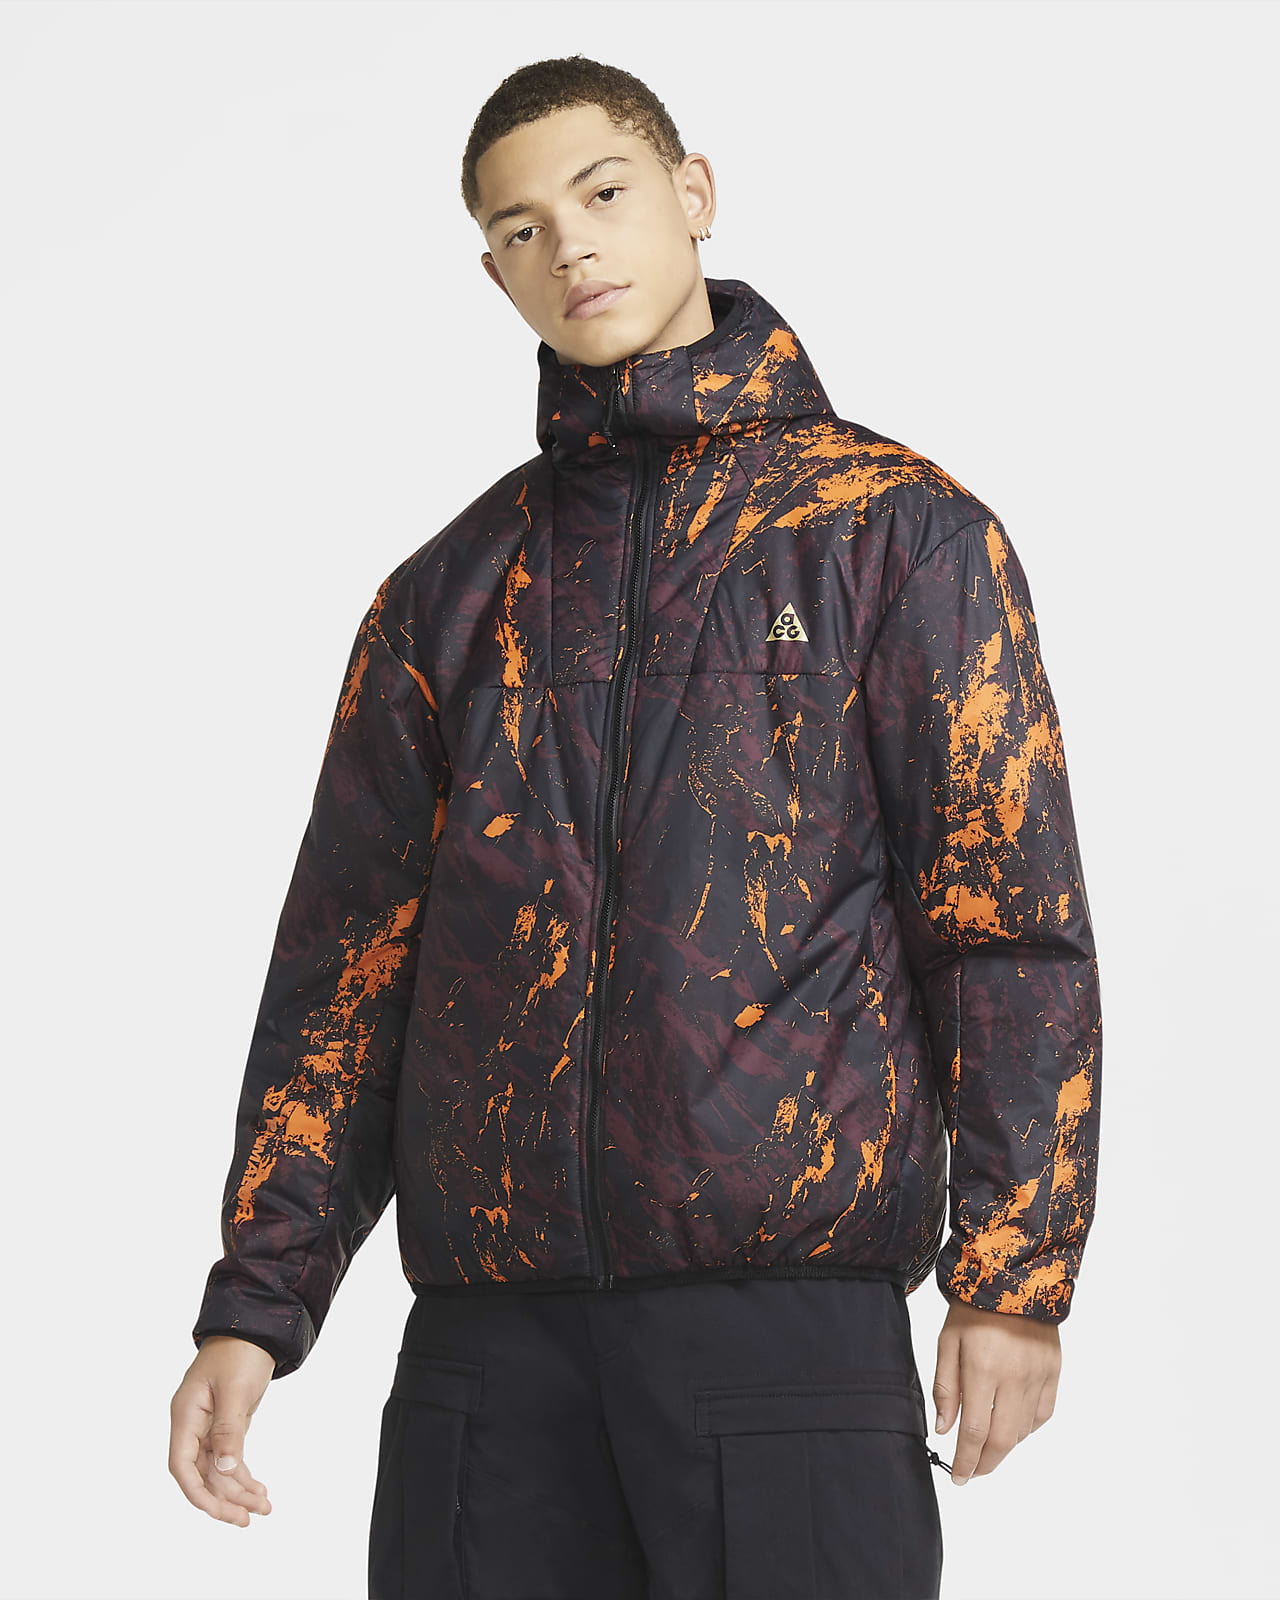 Nike ACG 'Rope de Dope Ultra Rock' Men's Packable Insulated Jacket